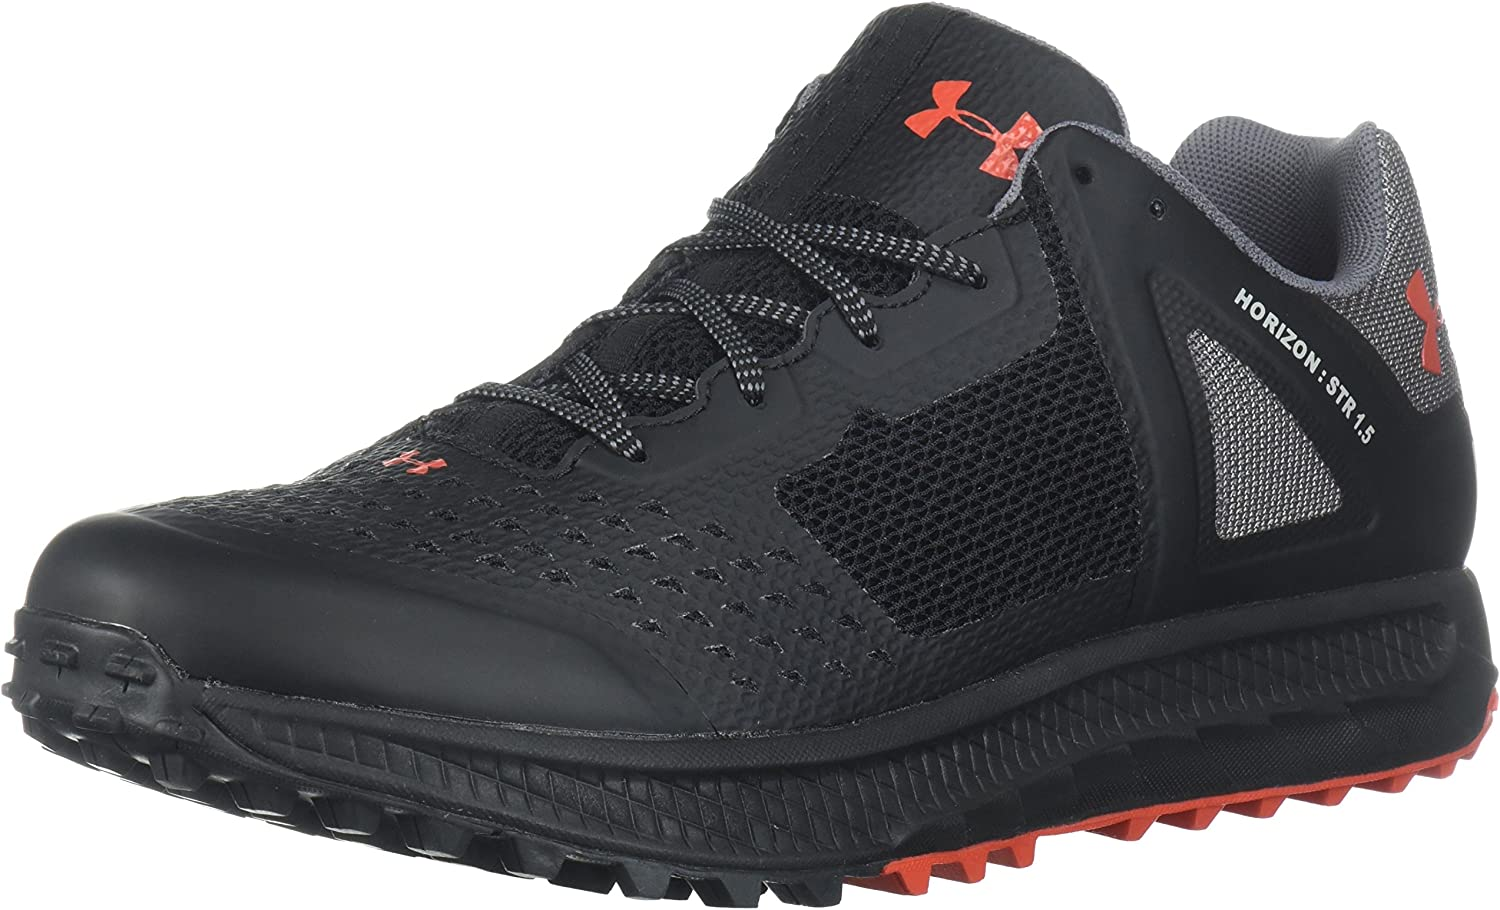 Under Armour Mens Horizon STR 1.5 Hiking Shoe